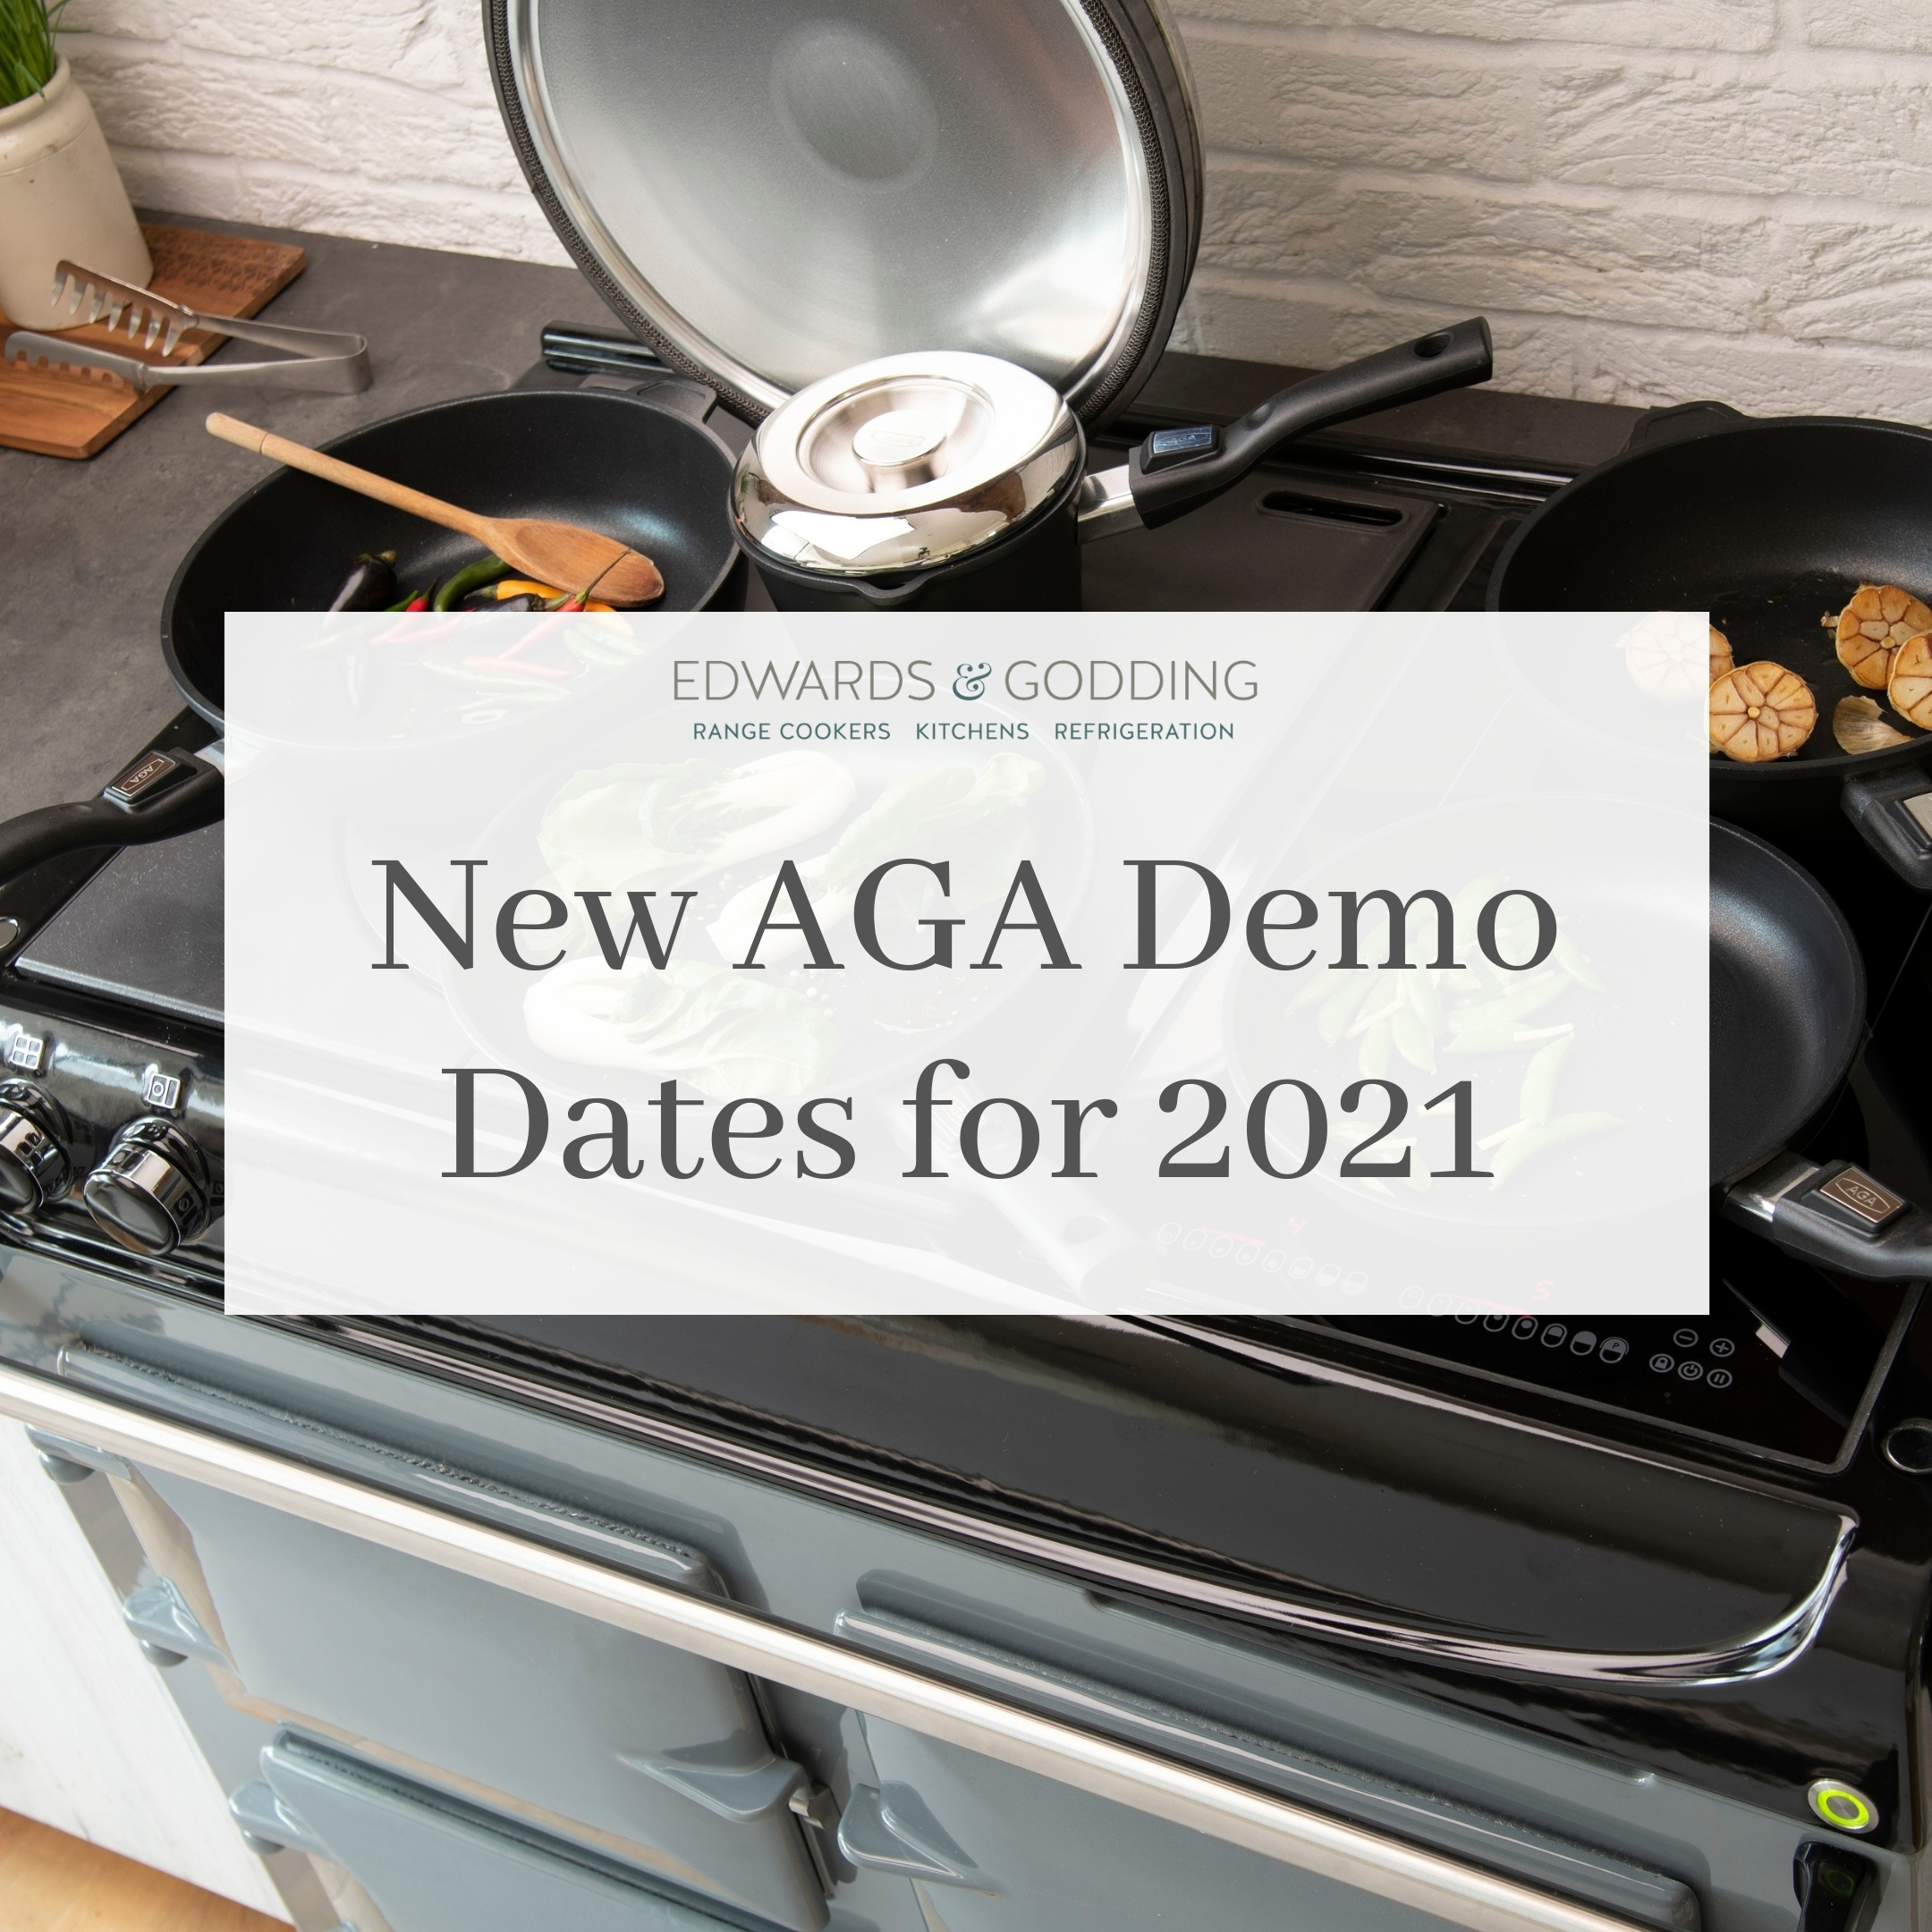 New AGA Cookery Demonstration Dates for 2021